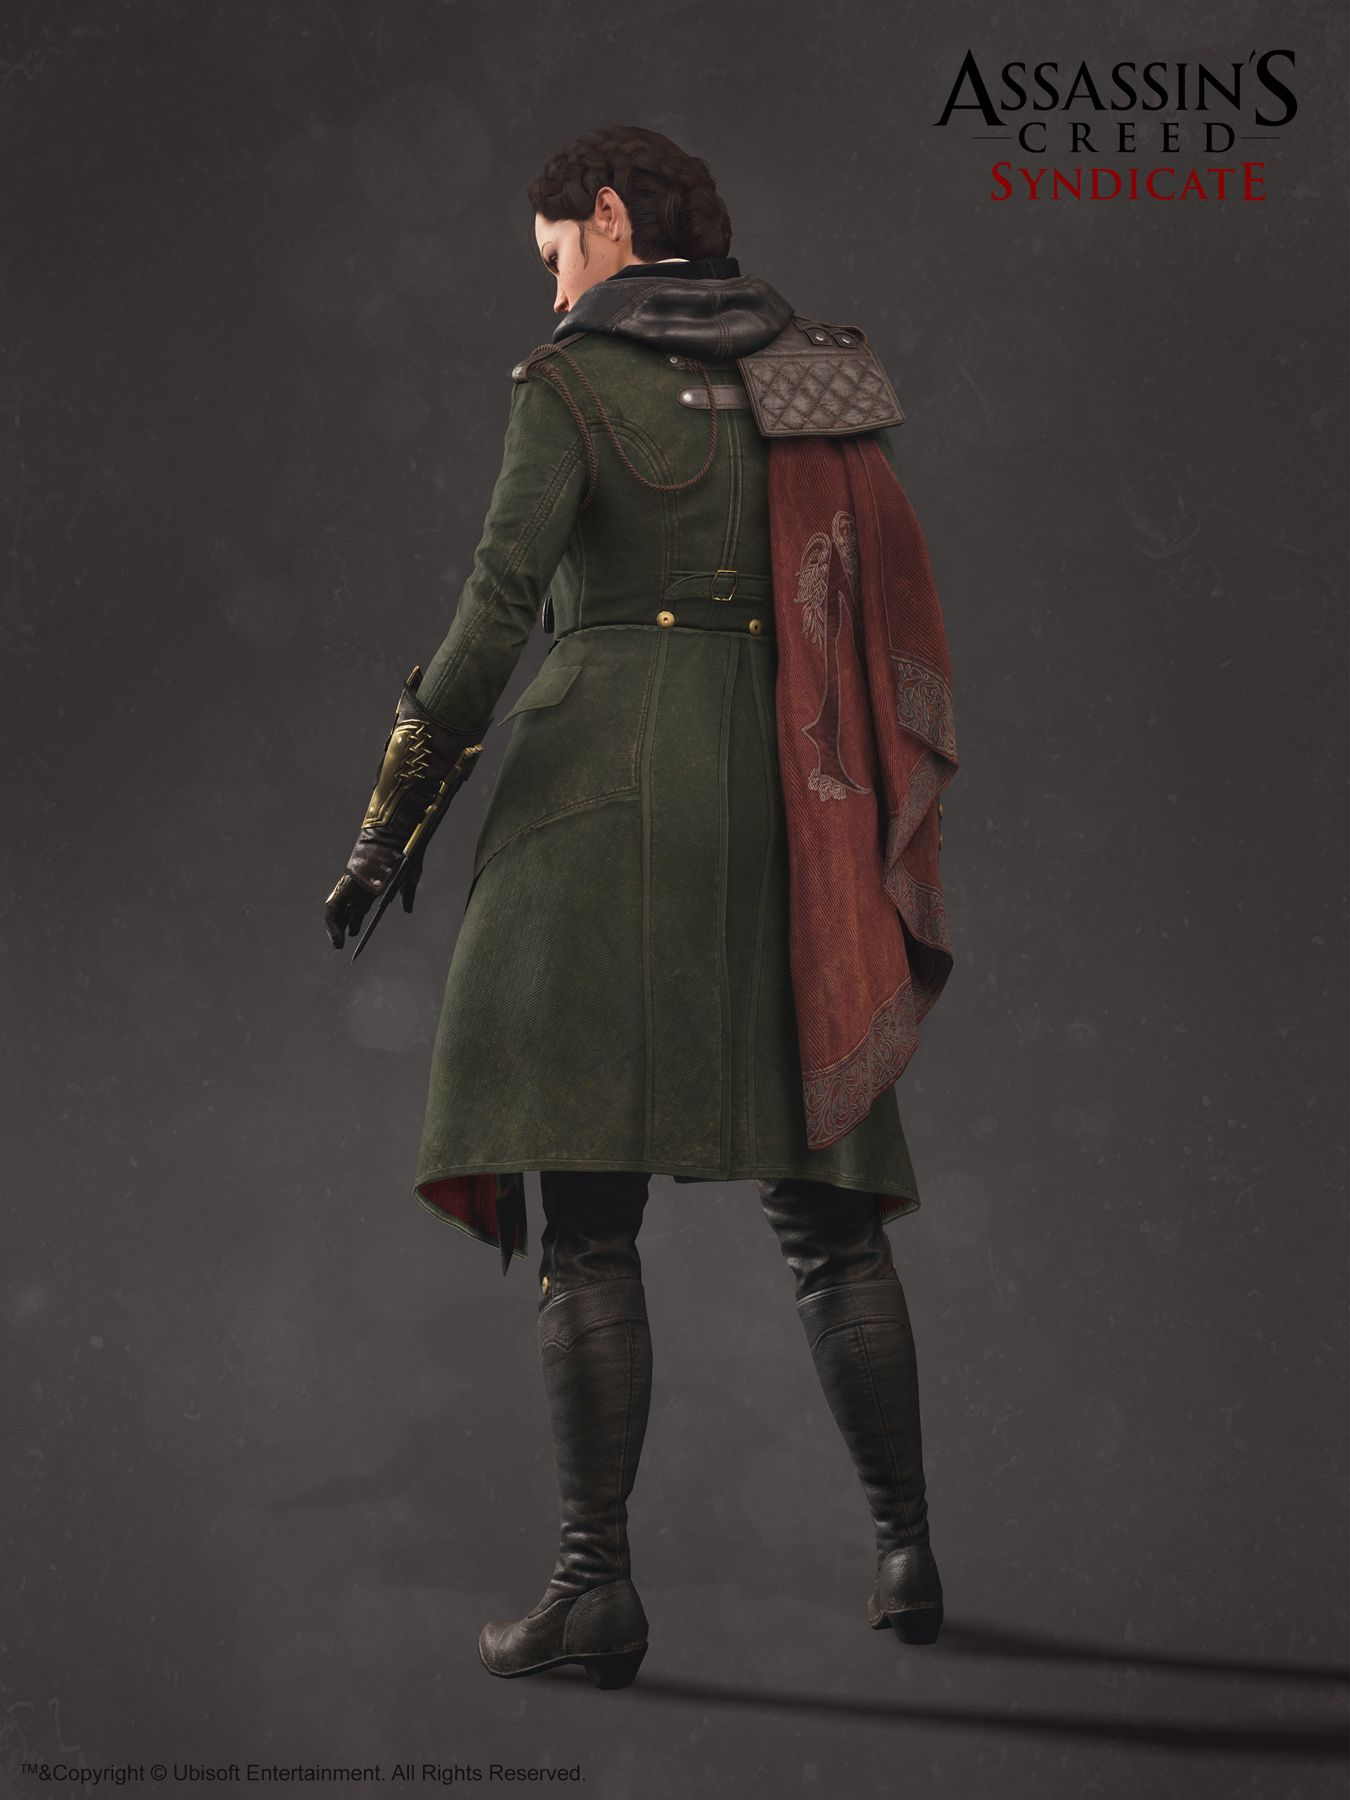 Assassin S Creed Syndicate Character Team Post Page 2 Assassins Creed Cosplay Assassins Creed Assassins Creed Evie